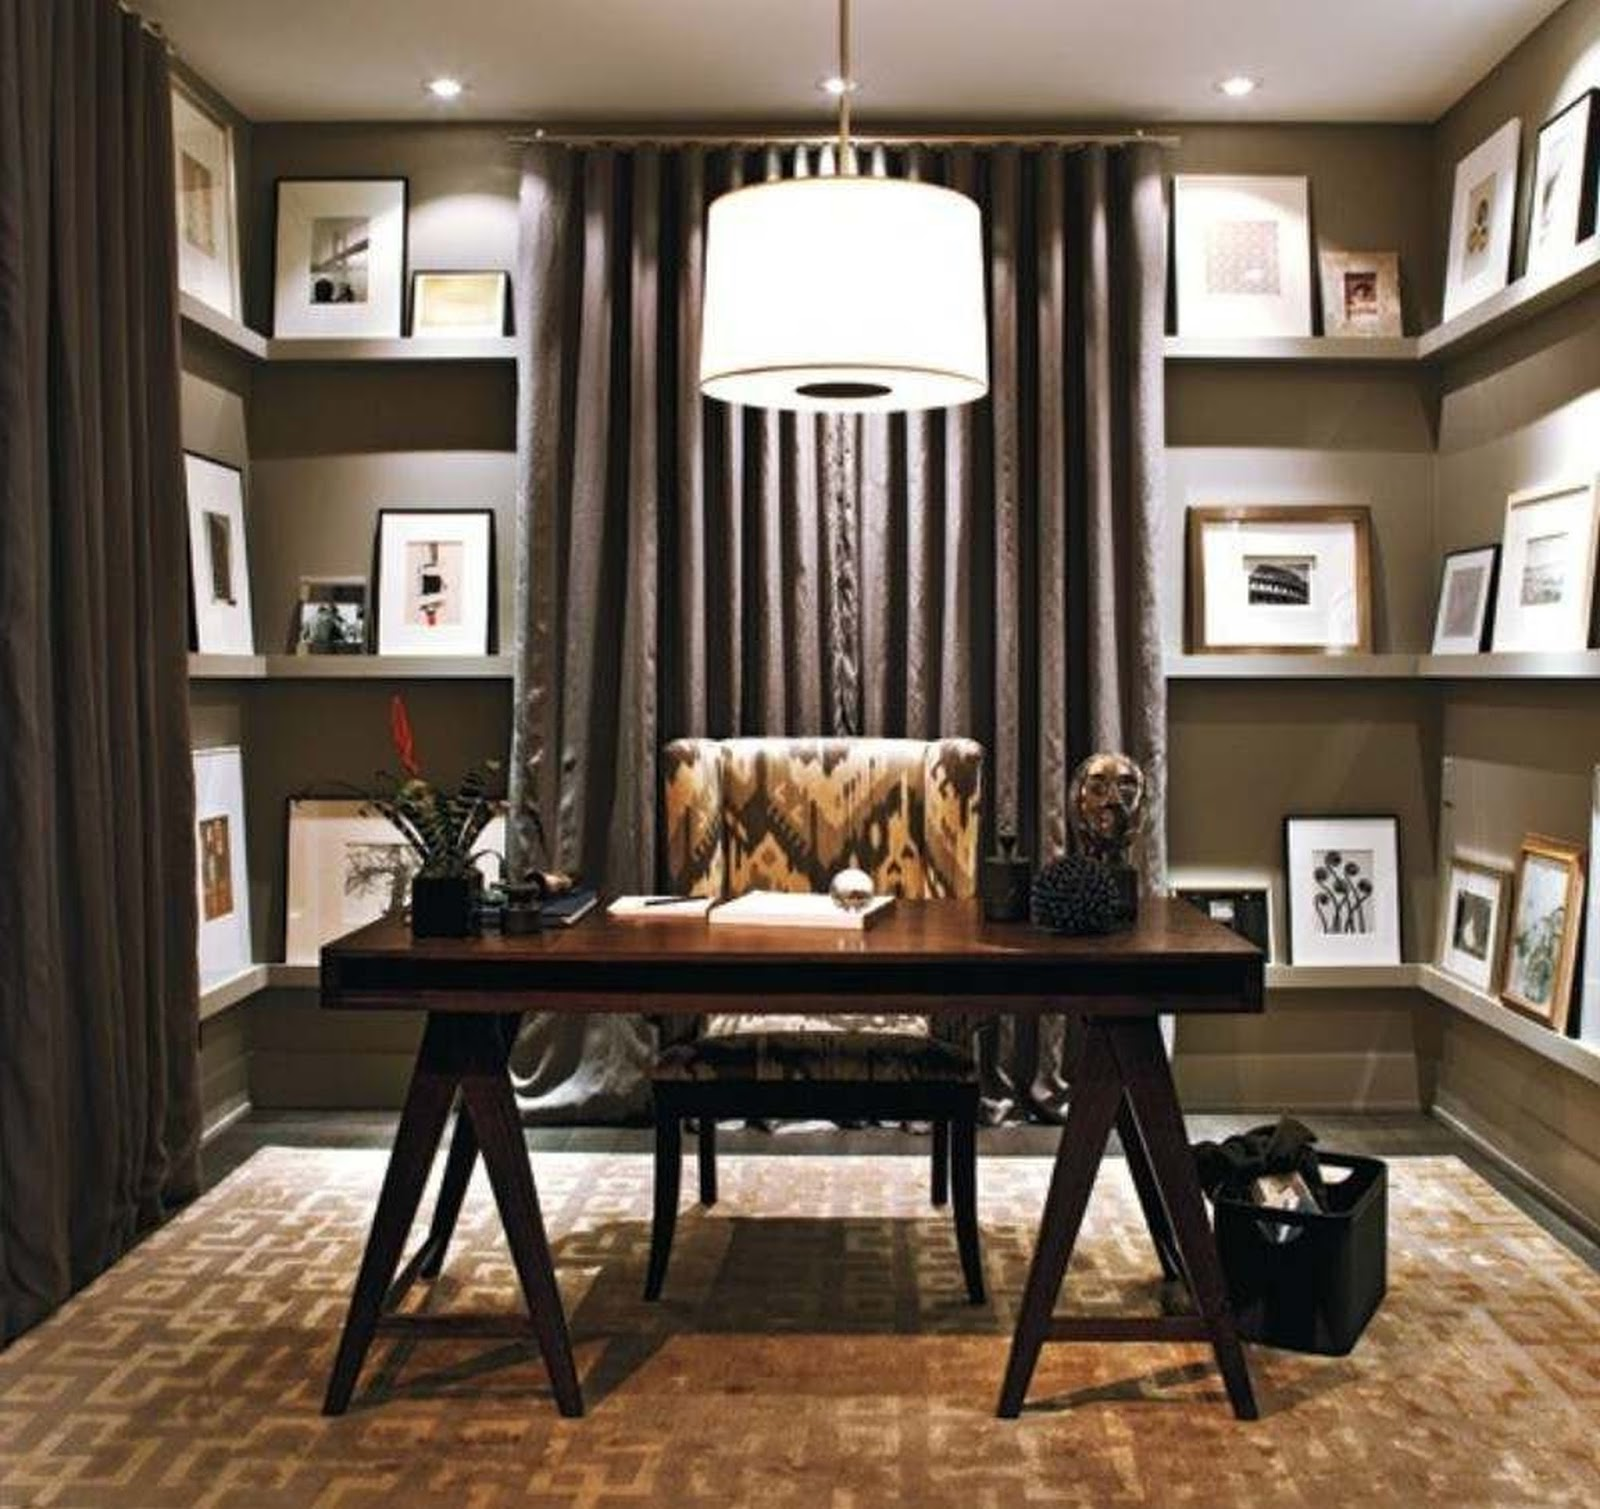 Home Design Ideas: 5 Tips How To Decorating An Artistic Home Office